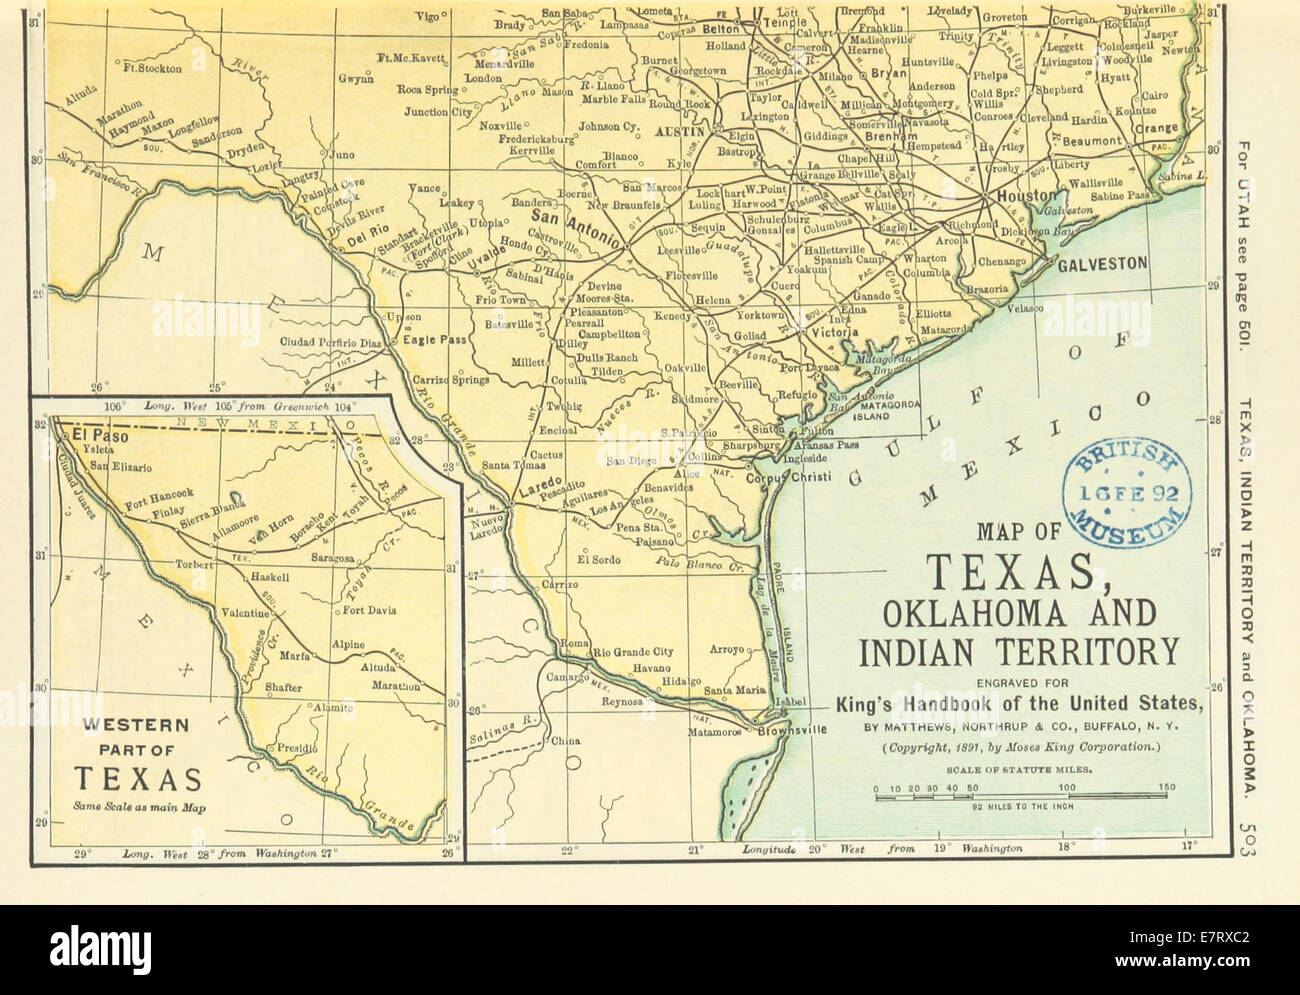 Us Maps 1891 P505 Map Of Texas Oklahoma And Indian Territory R